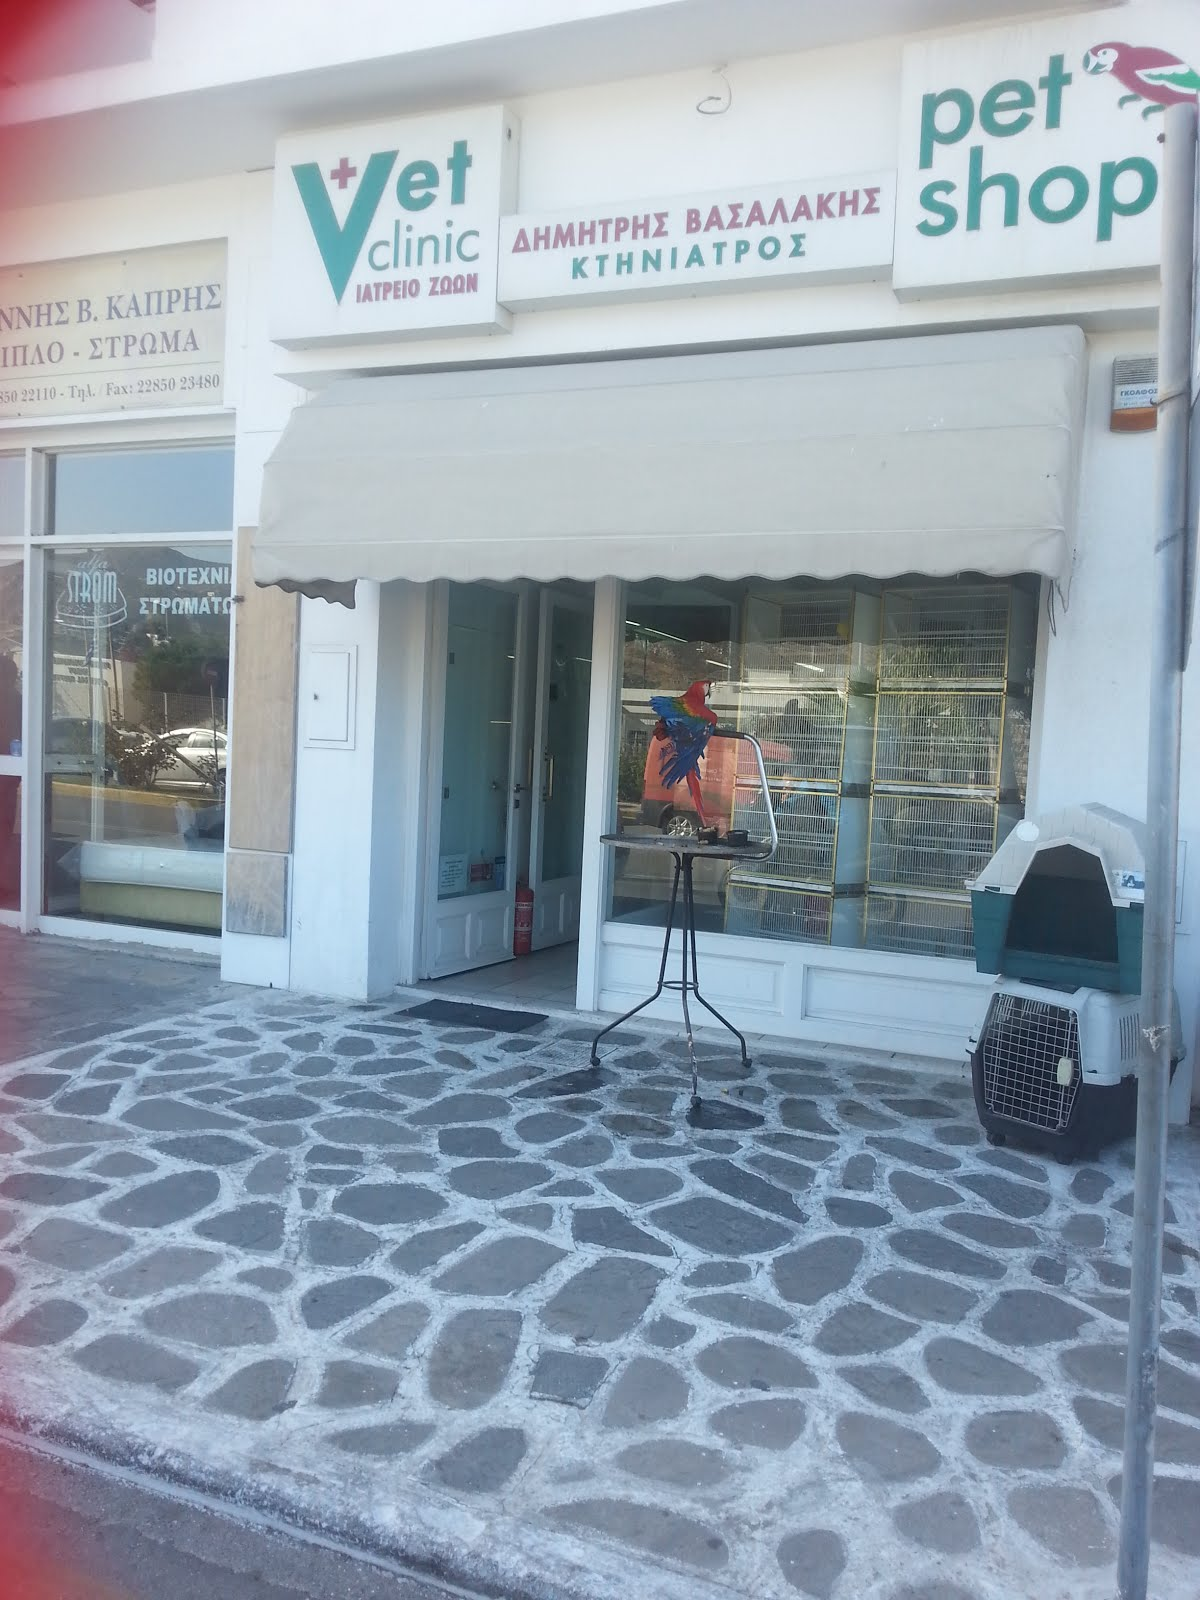 Pet Shop Vassalakis